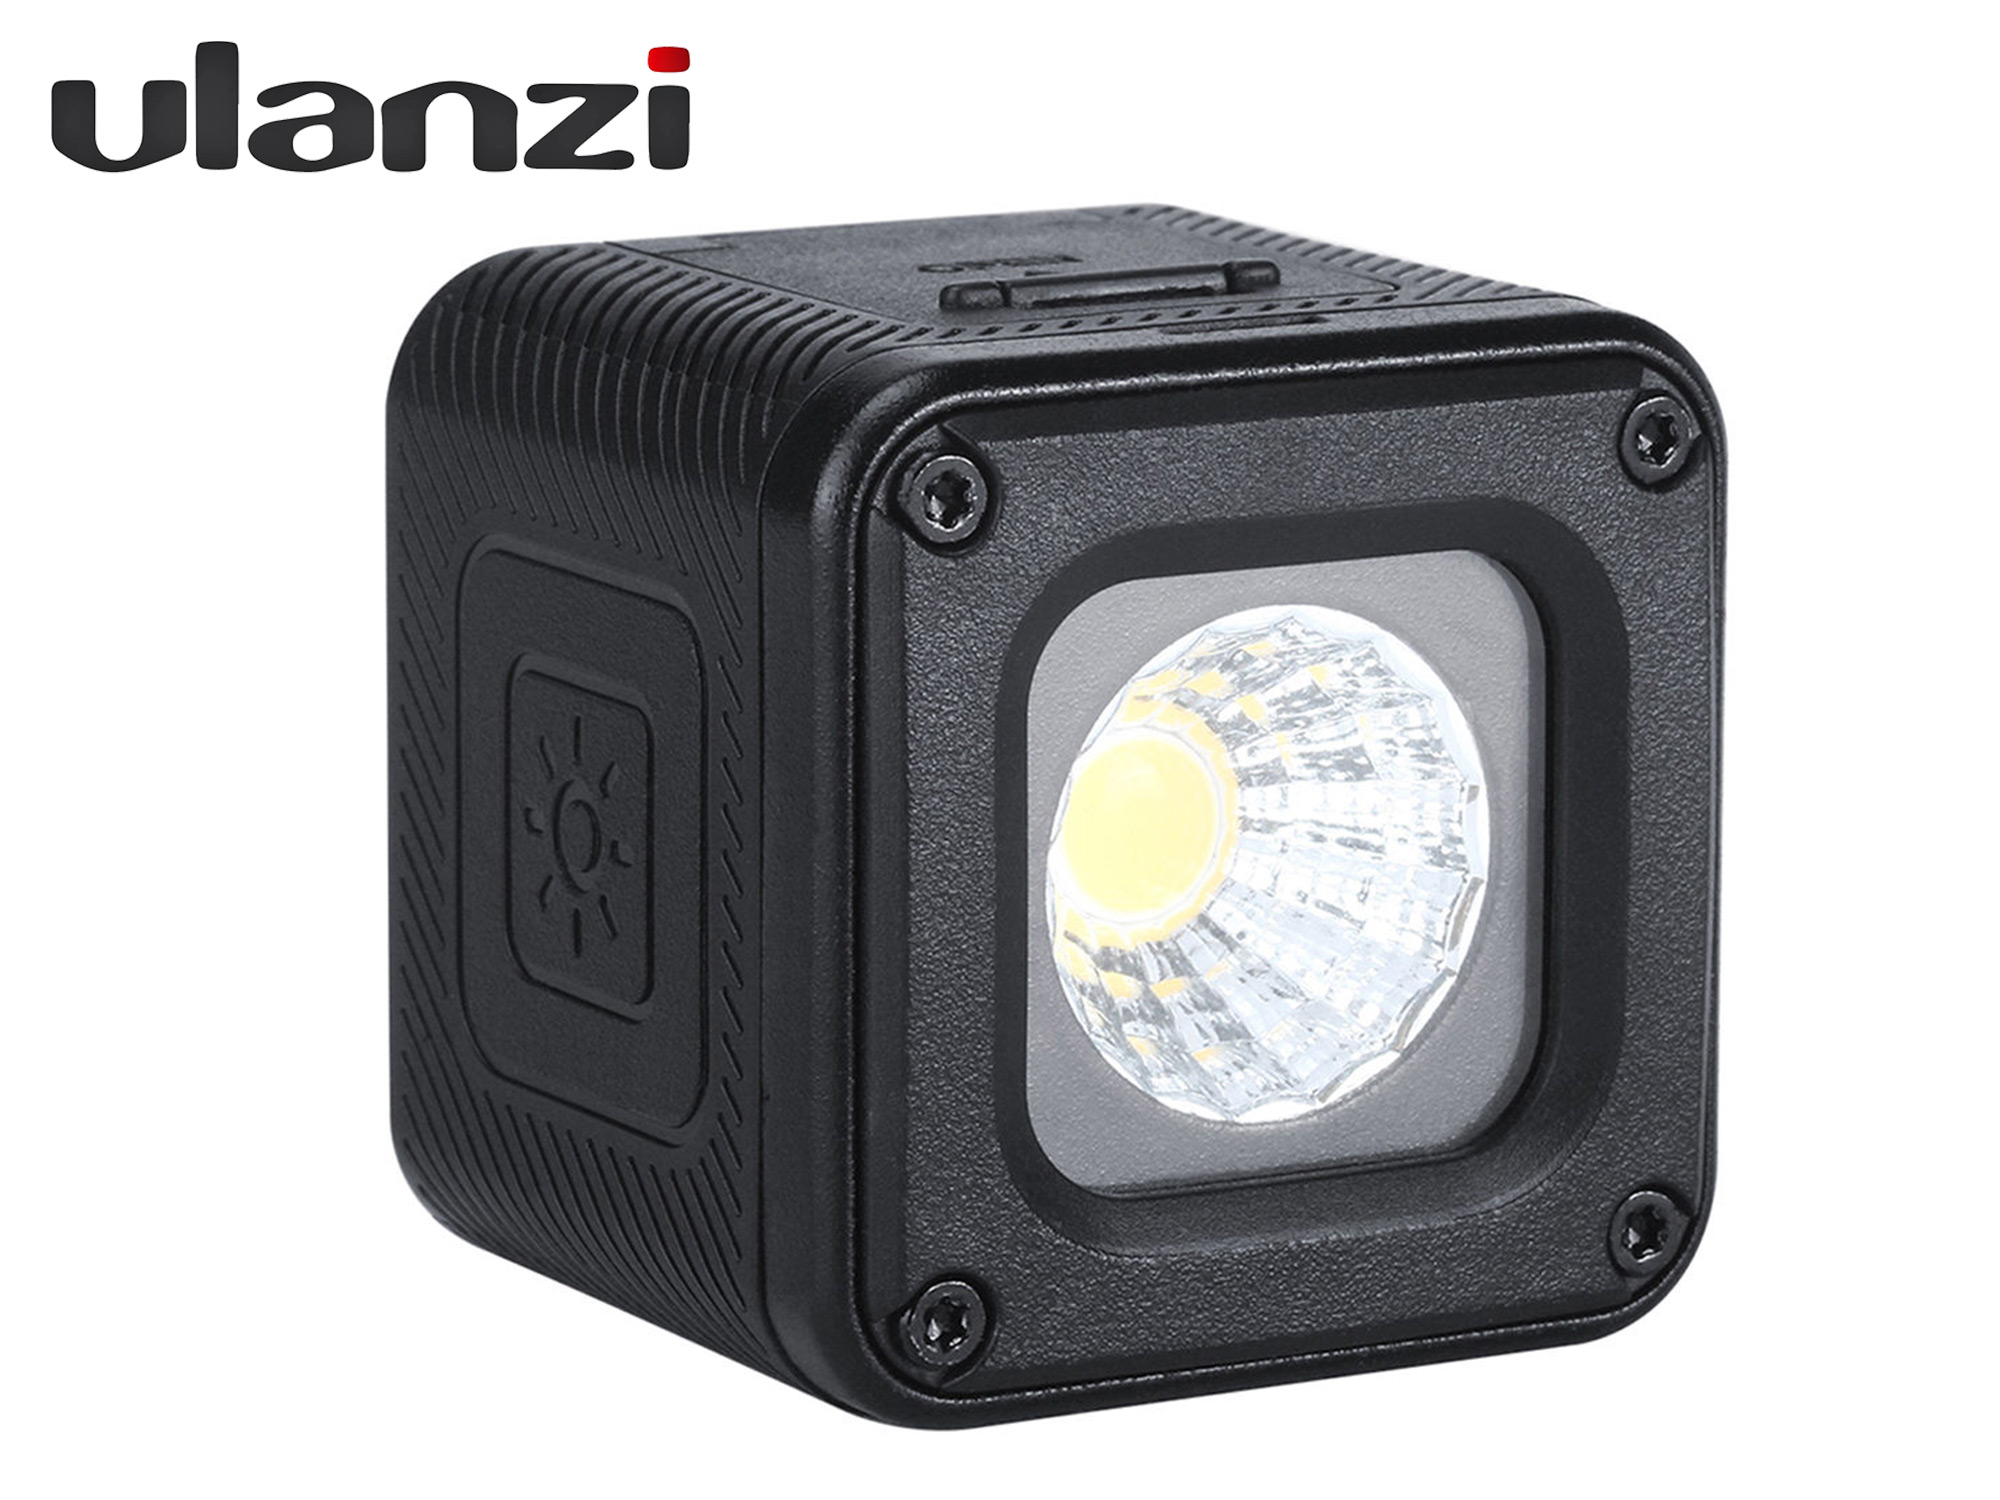 Ulanzi Versatile Waterproof Cube Light